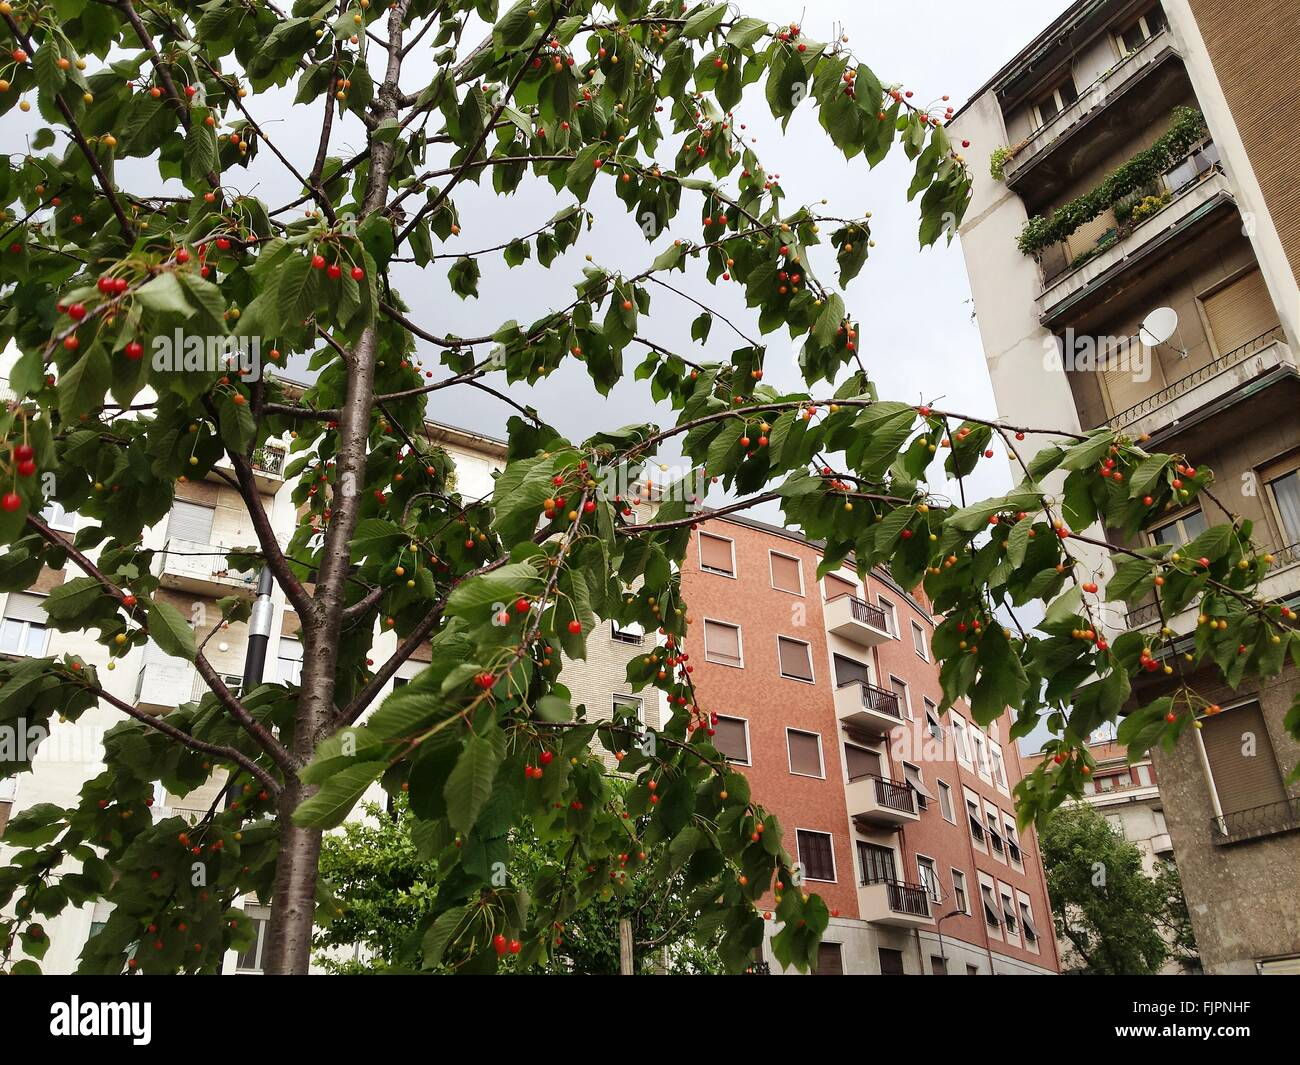 Low Angle View Of Fruit Tree With Buildings In Background - Stock Image